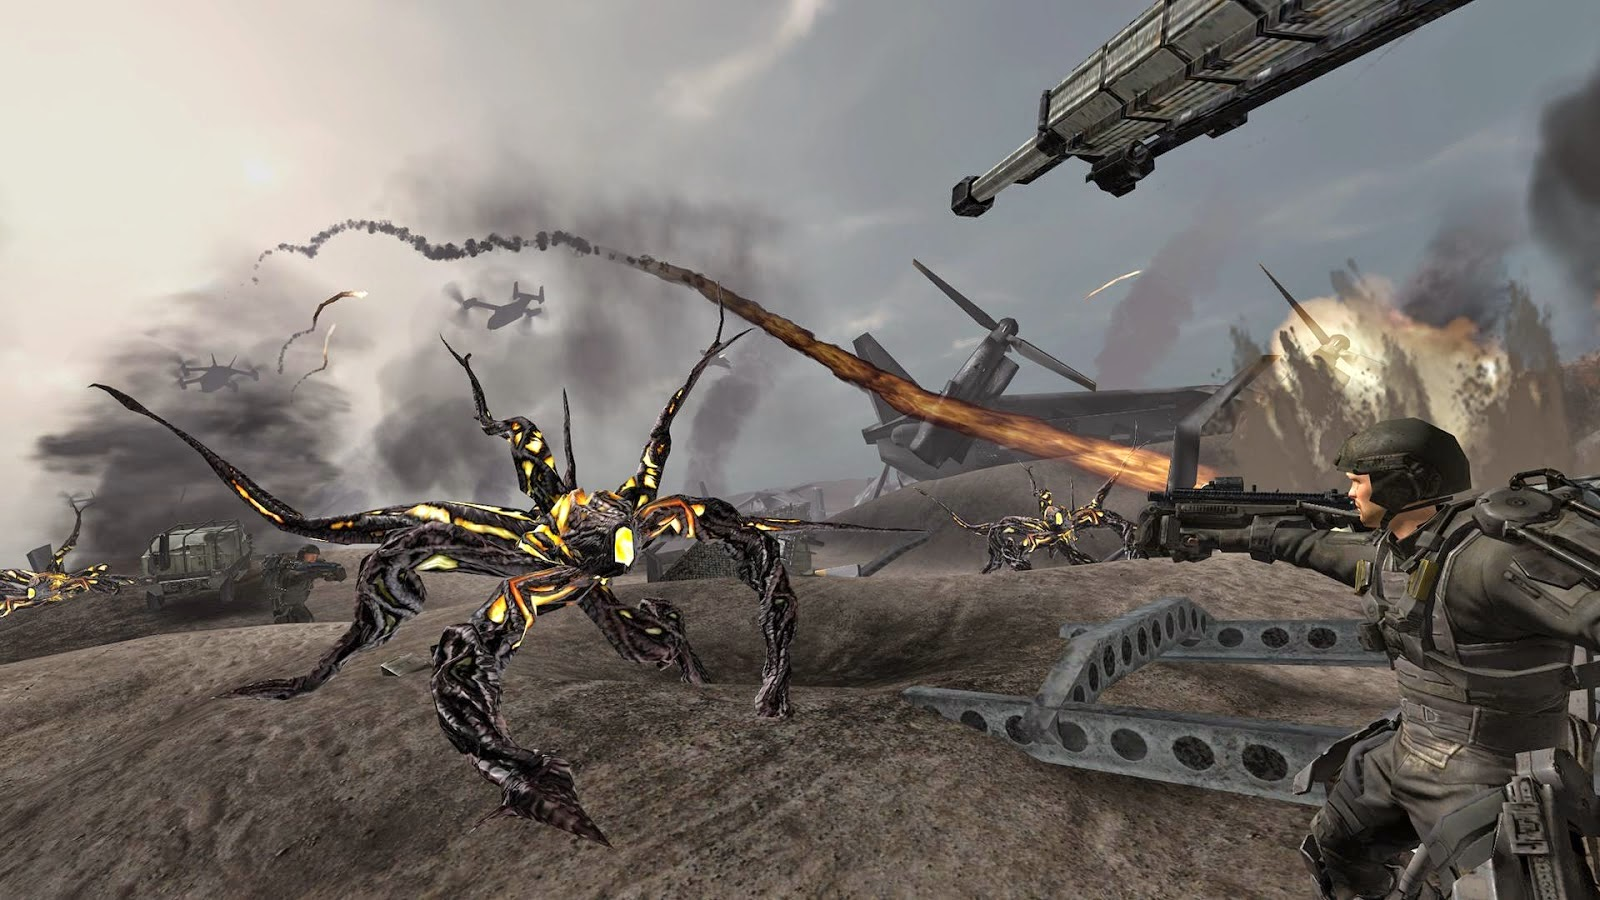 Edge of Tomorrow Game v1.0.0 [Unlock All Character & Unlimited Ammo] APK+DATA